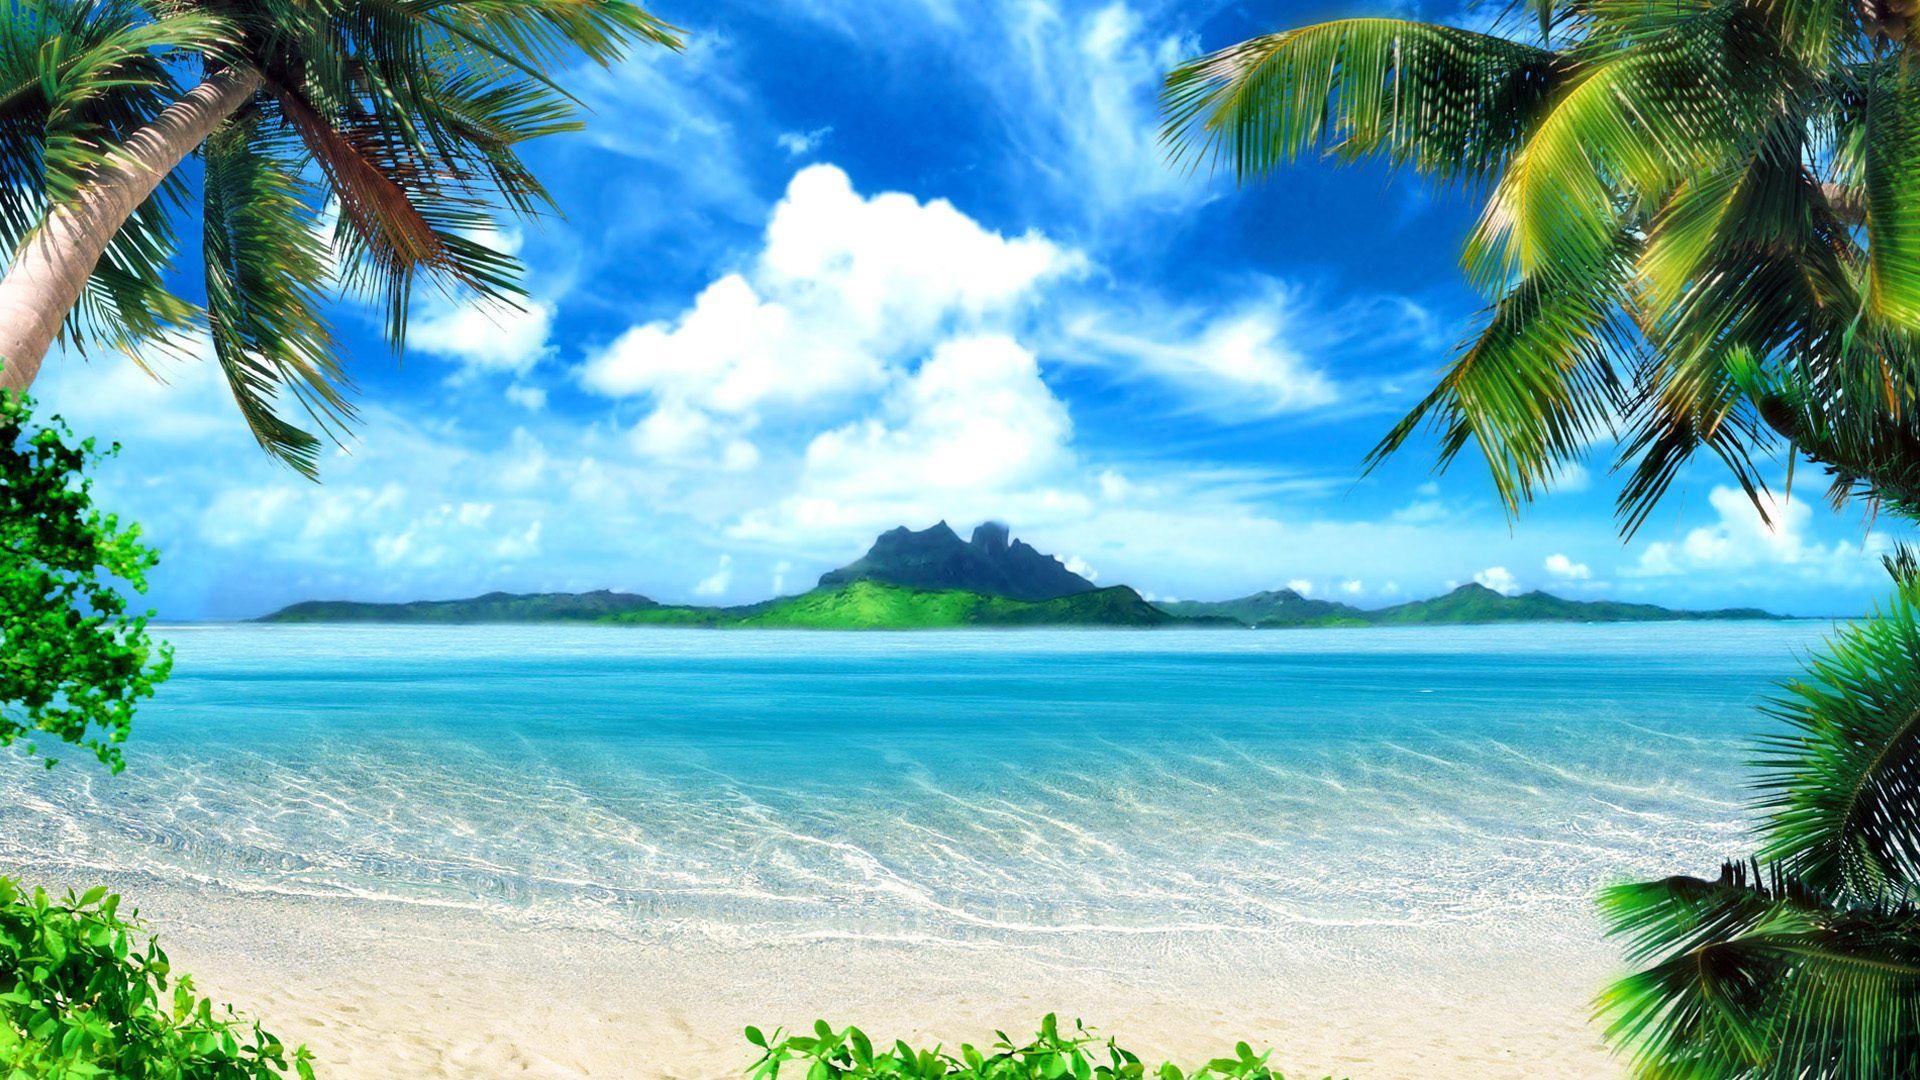 The best beach scenery Wallpapers Beach Pictures and images 1920x1080